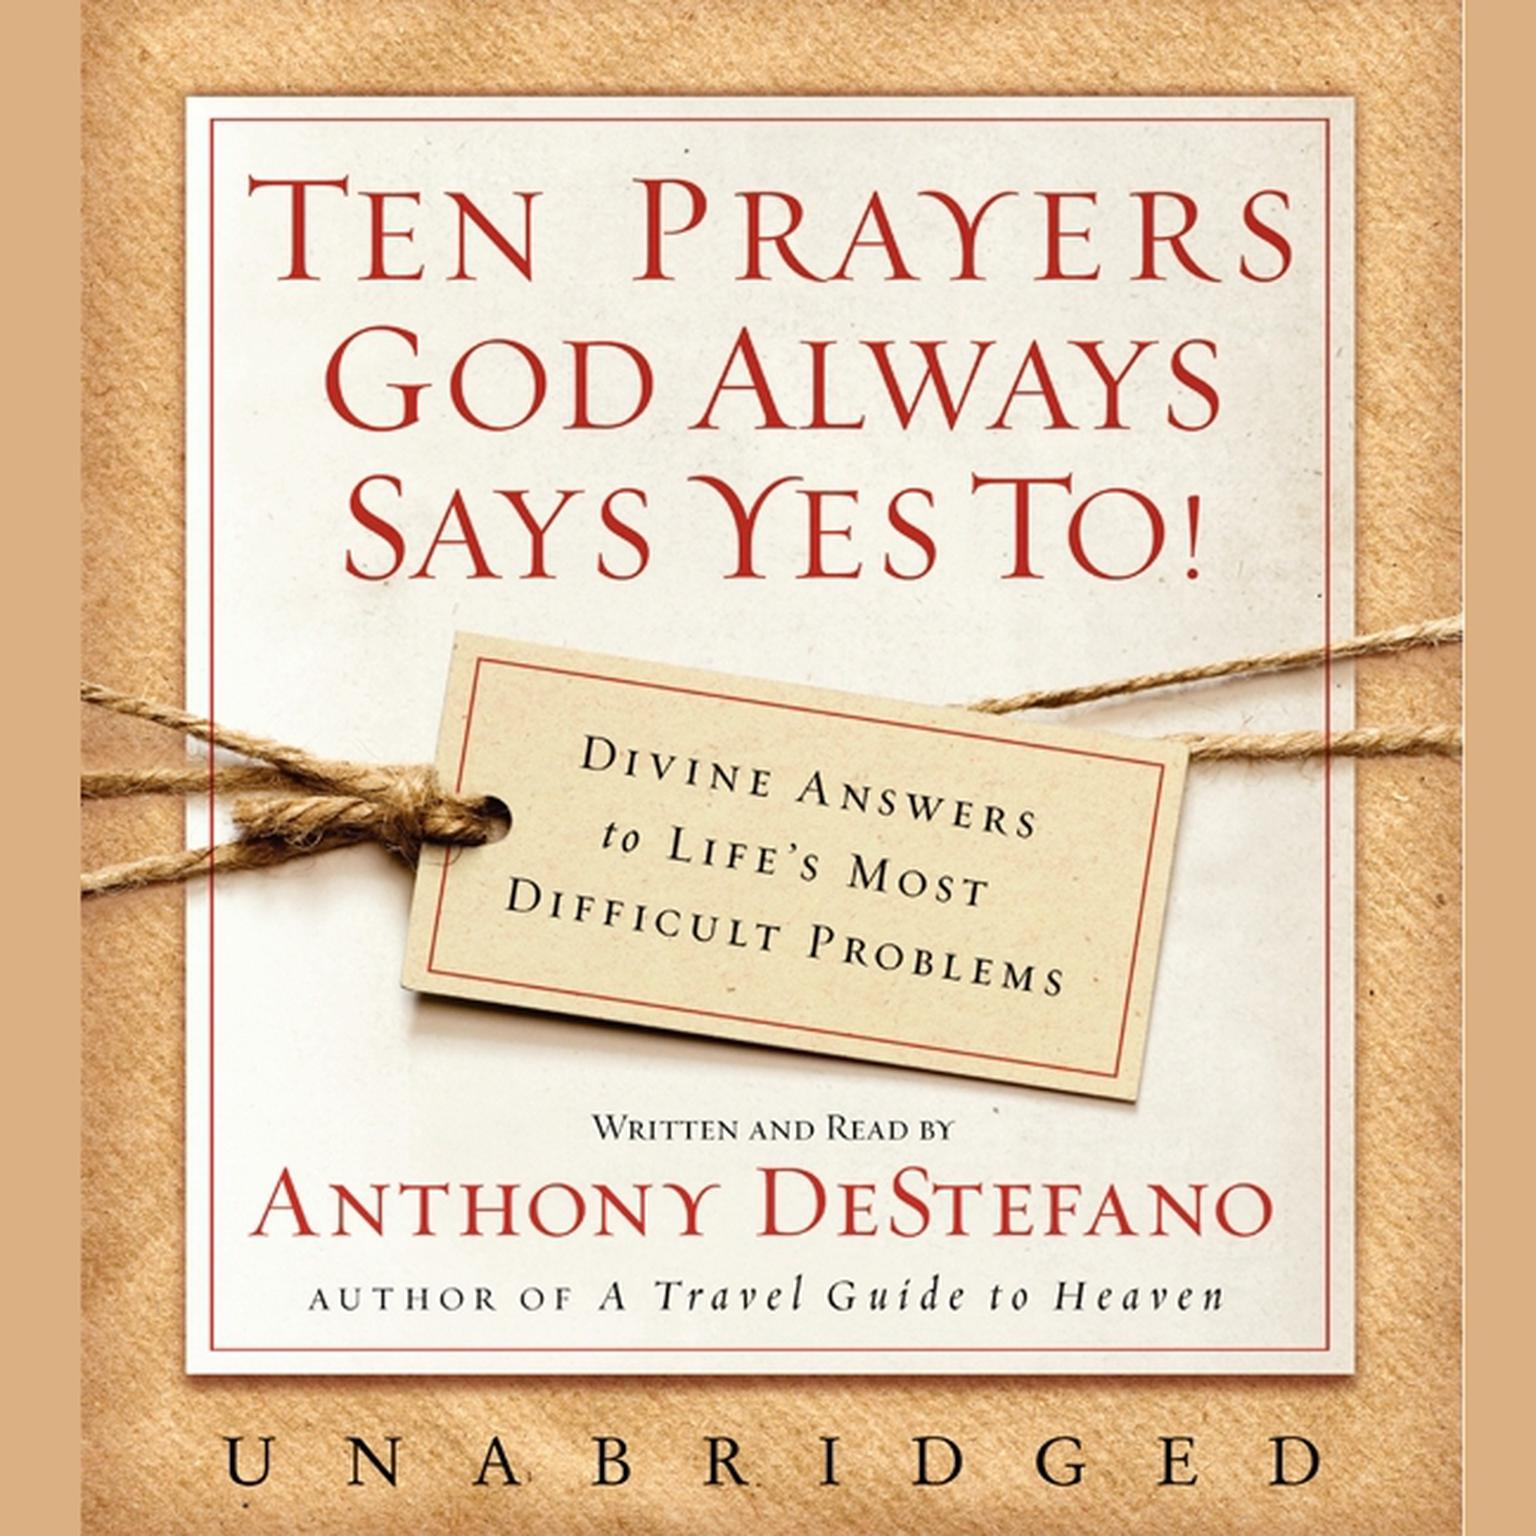 Printable Ten Prayers God Always Says Yes To: Divine Answers to Life's Most Difficult Problems Audiobook Cover Art